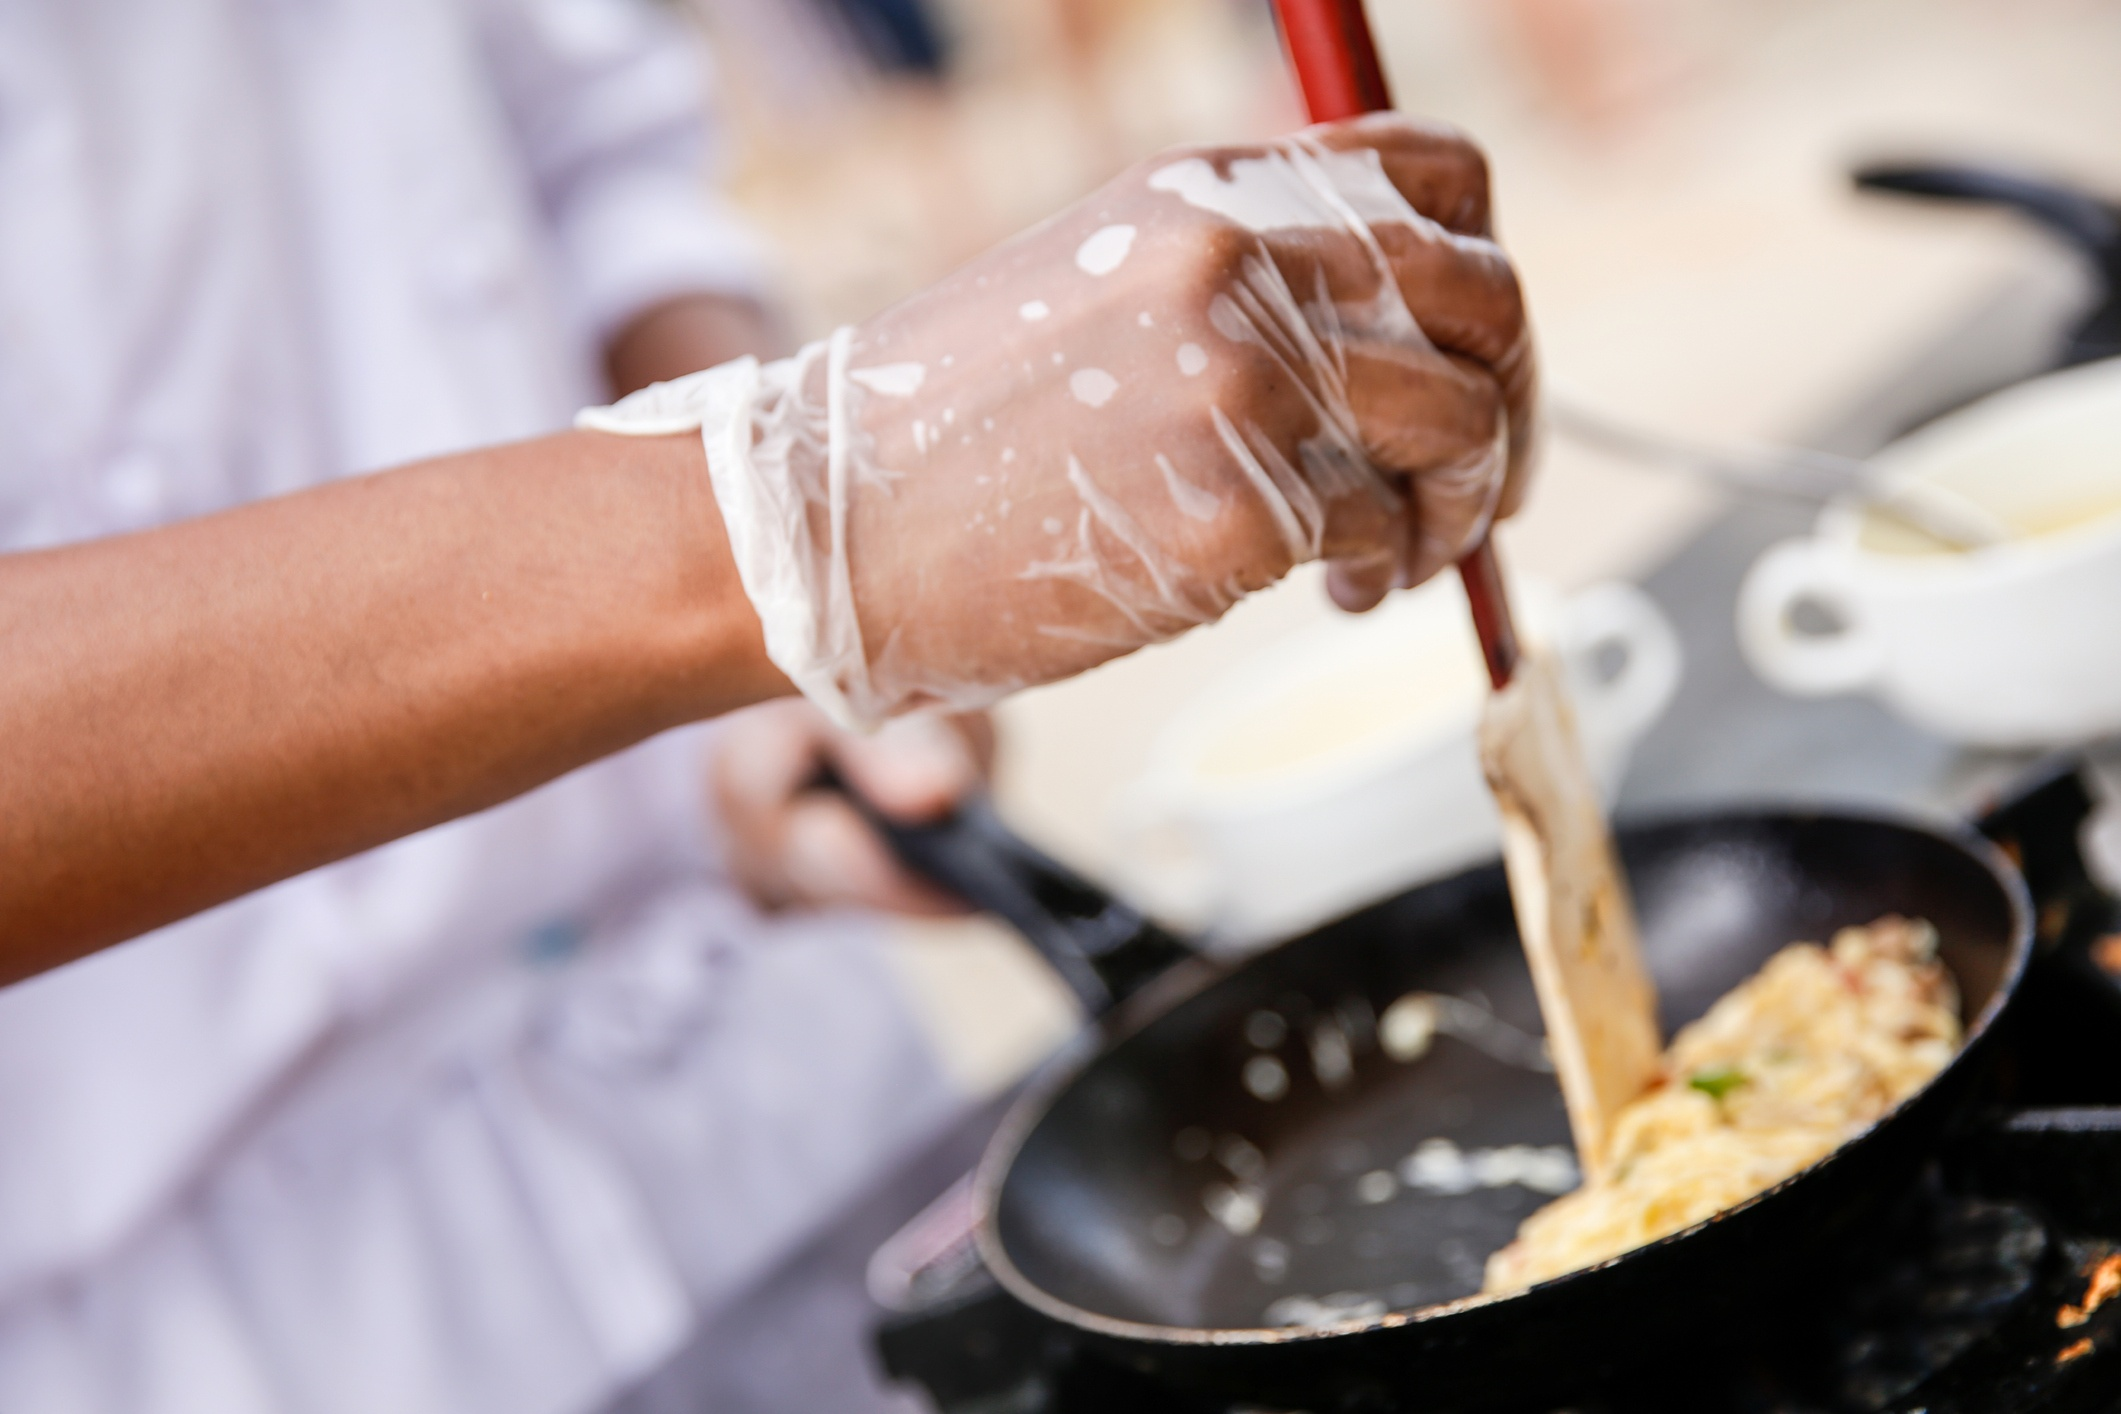 Hand with Disposable Glove Stirring Food